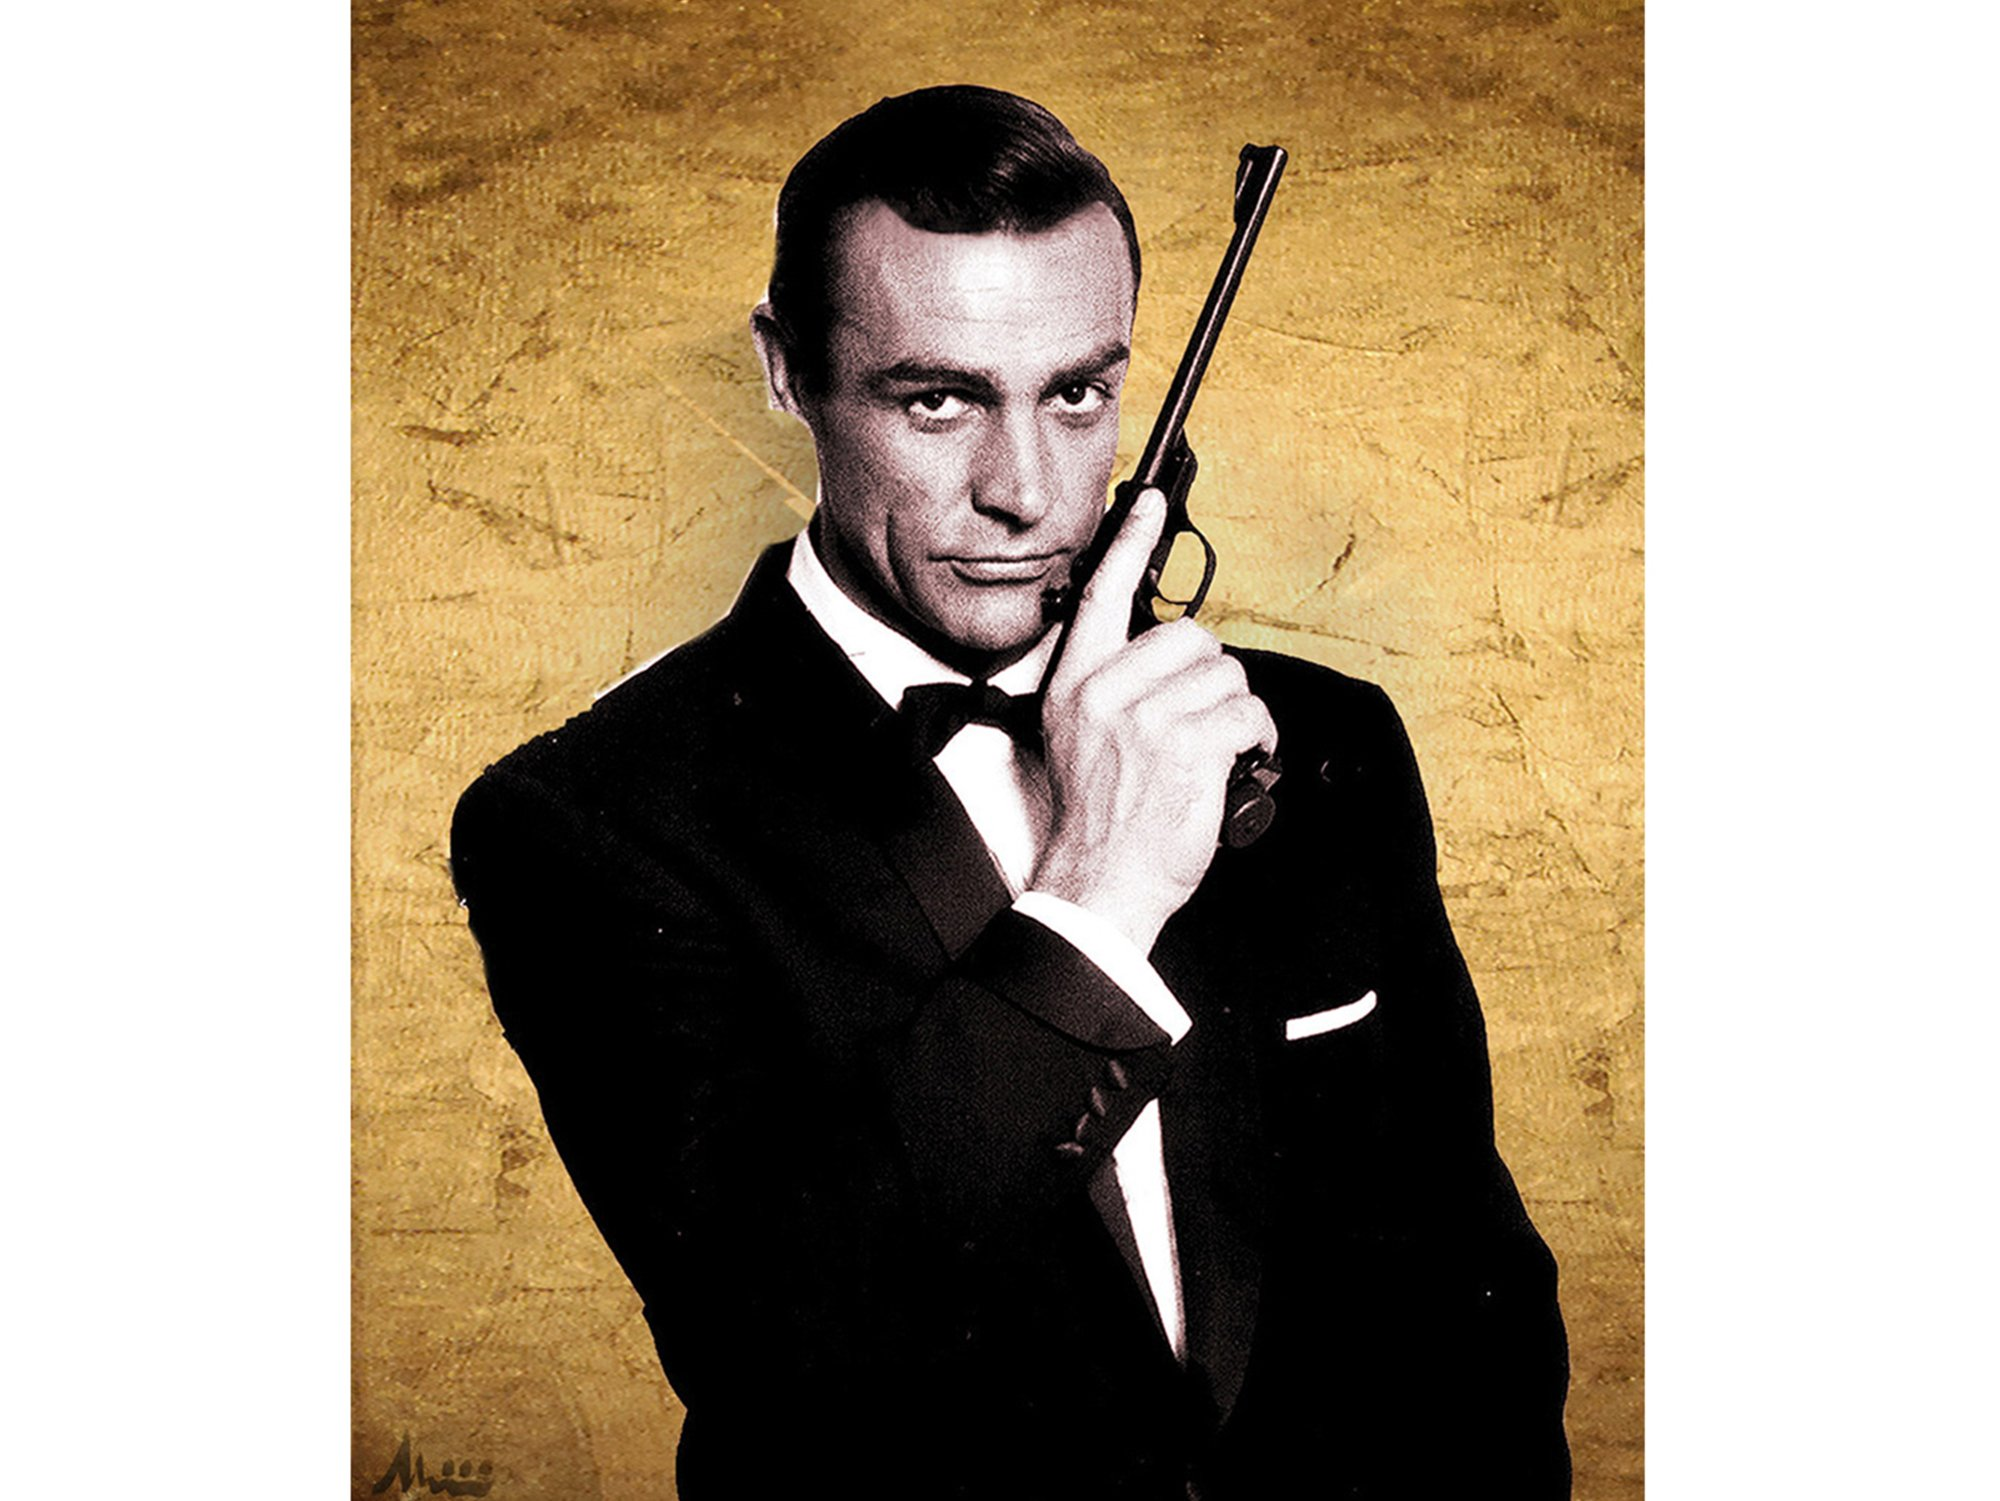 Sean Connery As James Bond Albin Albinini Another Dandy